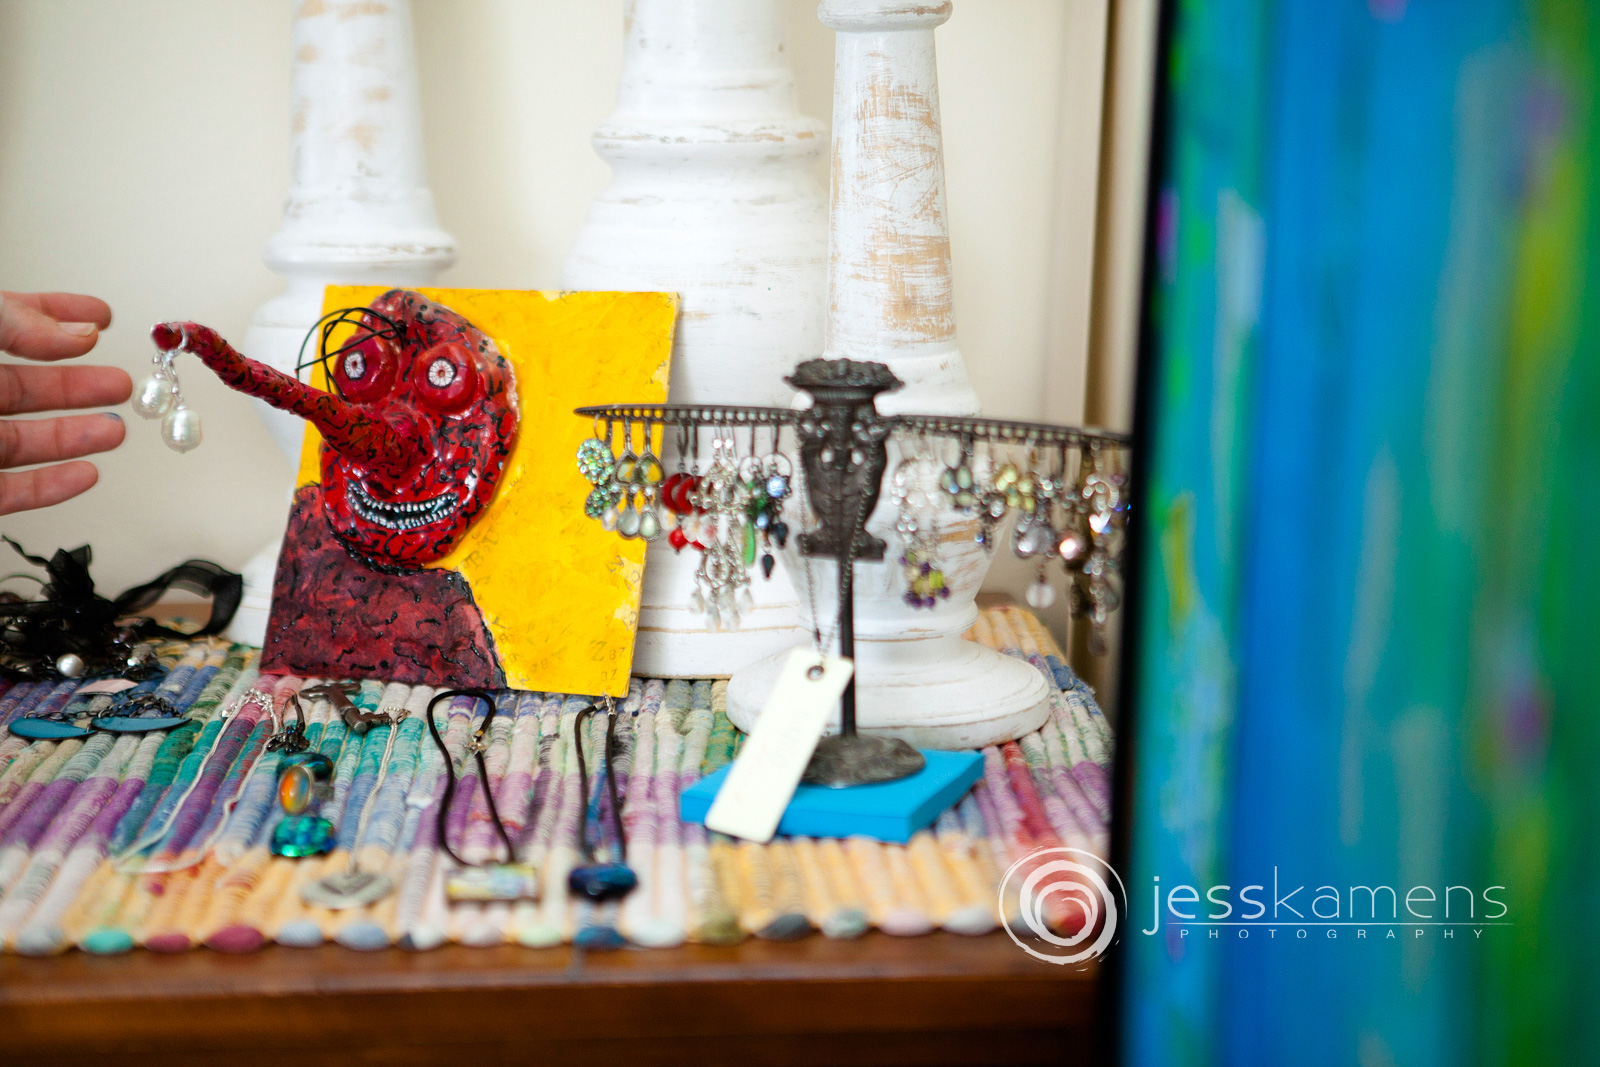 decorations of a handmade jewelry holder with earrings on it